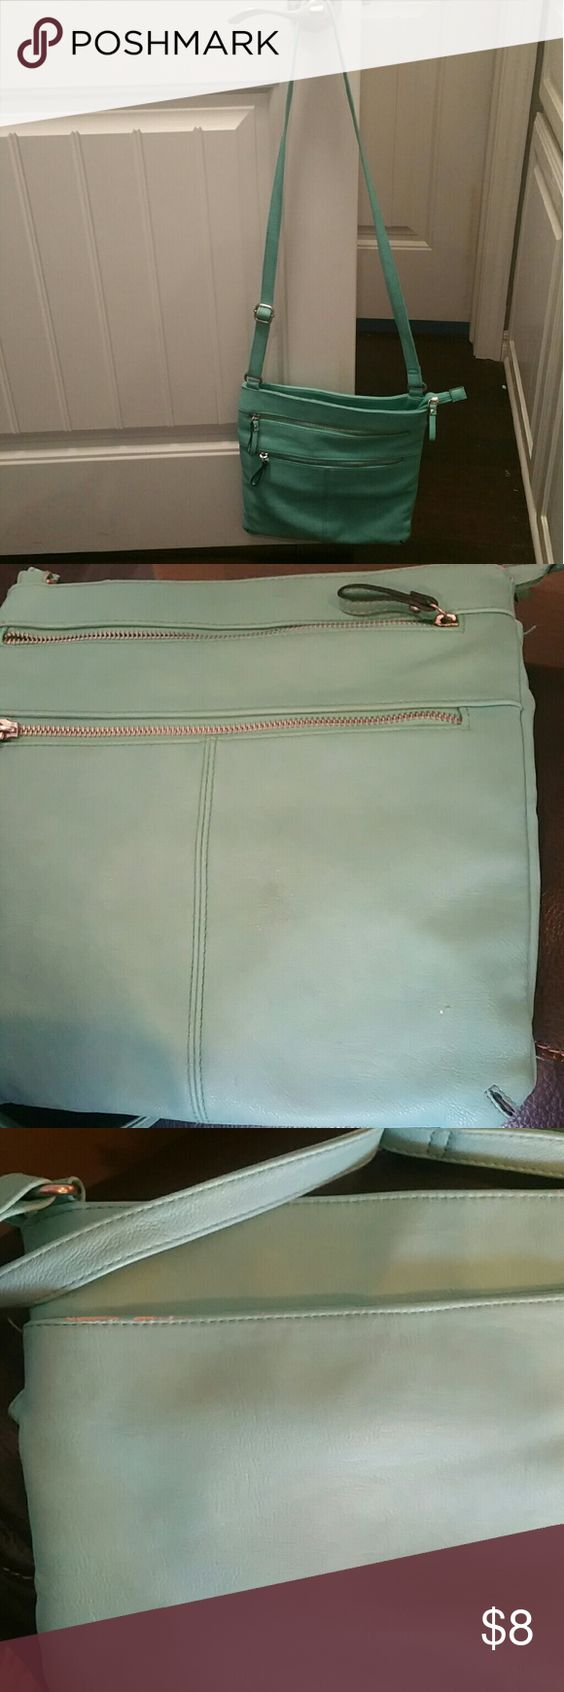 Turquoise shoulder purse Used purse. Good condition. A few minor flaws that can be seen in the last two pics. Bags Shoulder Bags